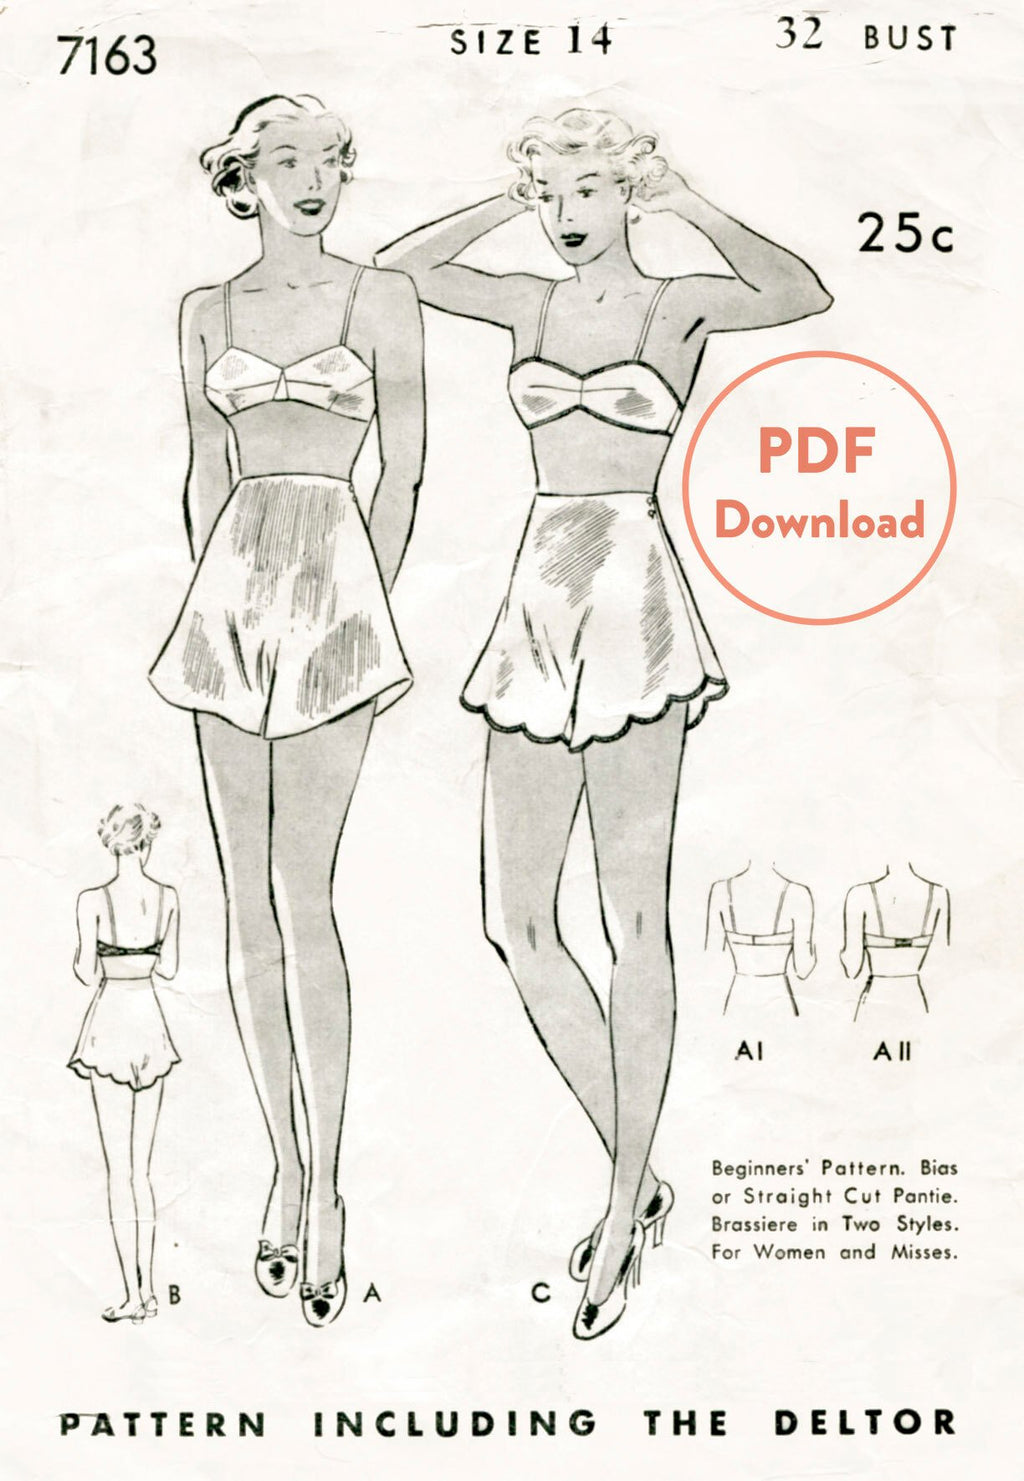 Butterick 7163 1930s vintage lingerie sewing pattern bra and tap shorts PDF download